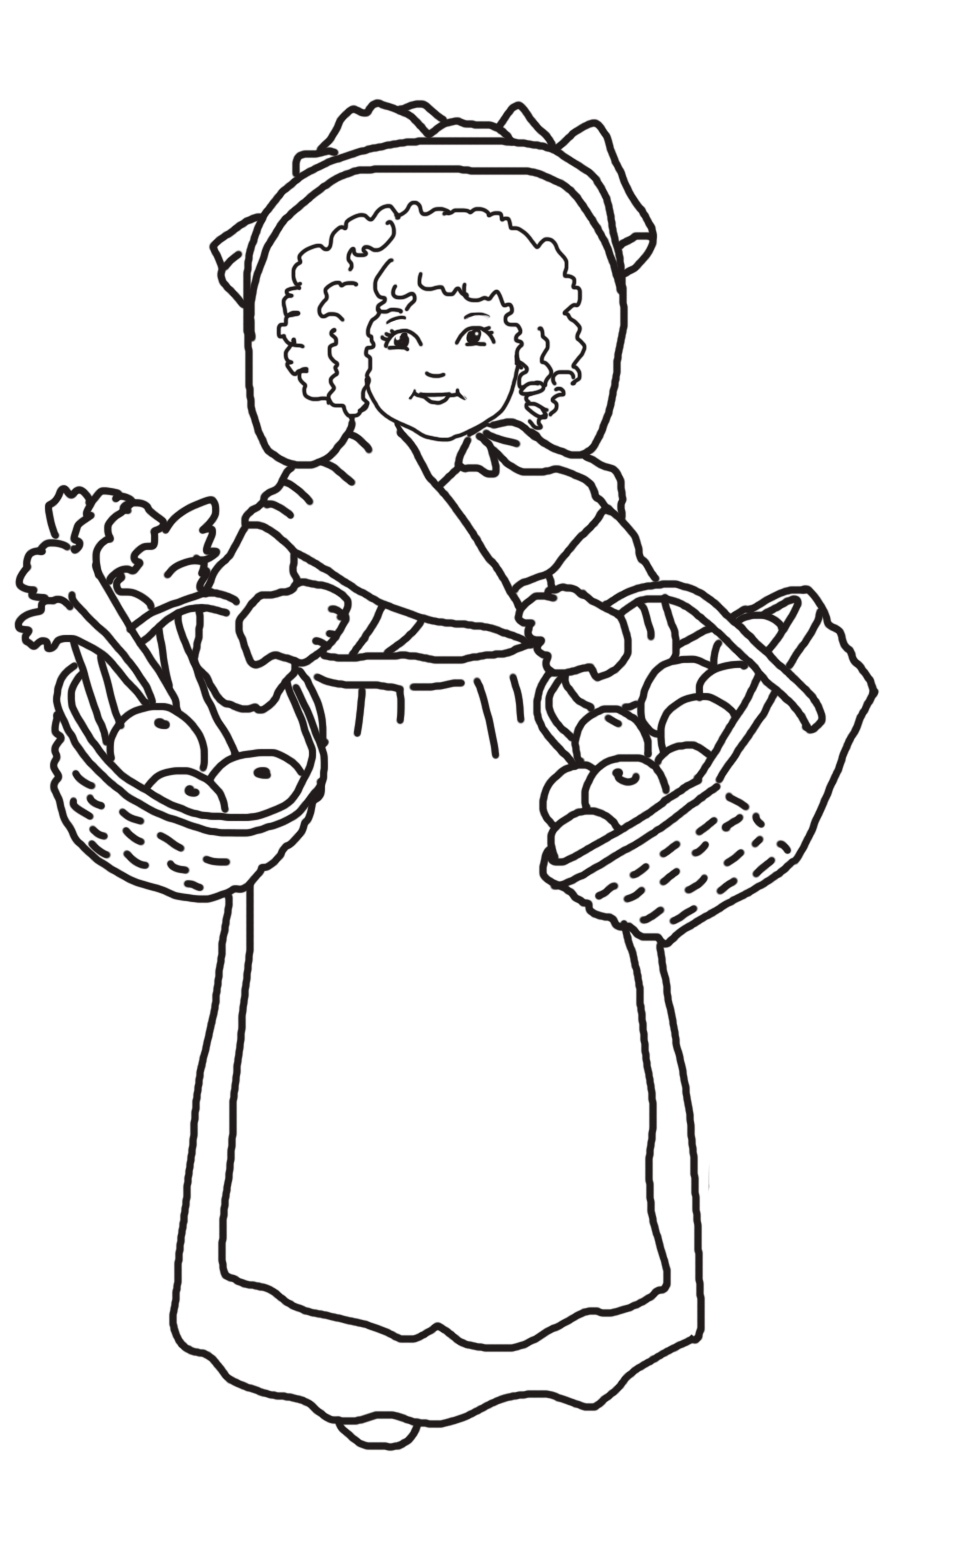 Girl with thanksgiving baskets fruit vegetables coloring pages to print